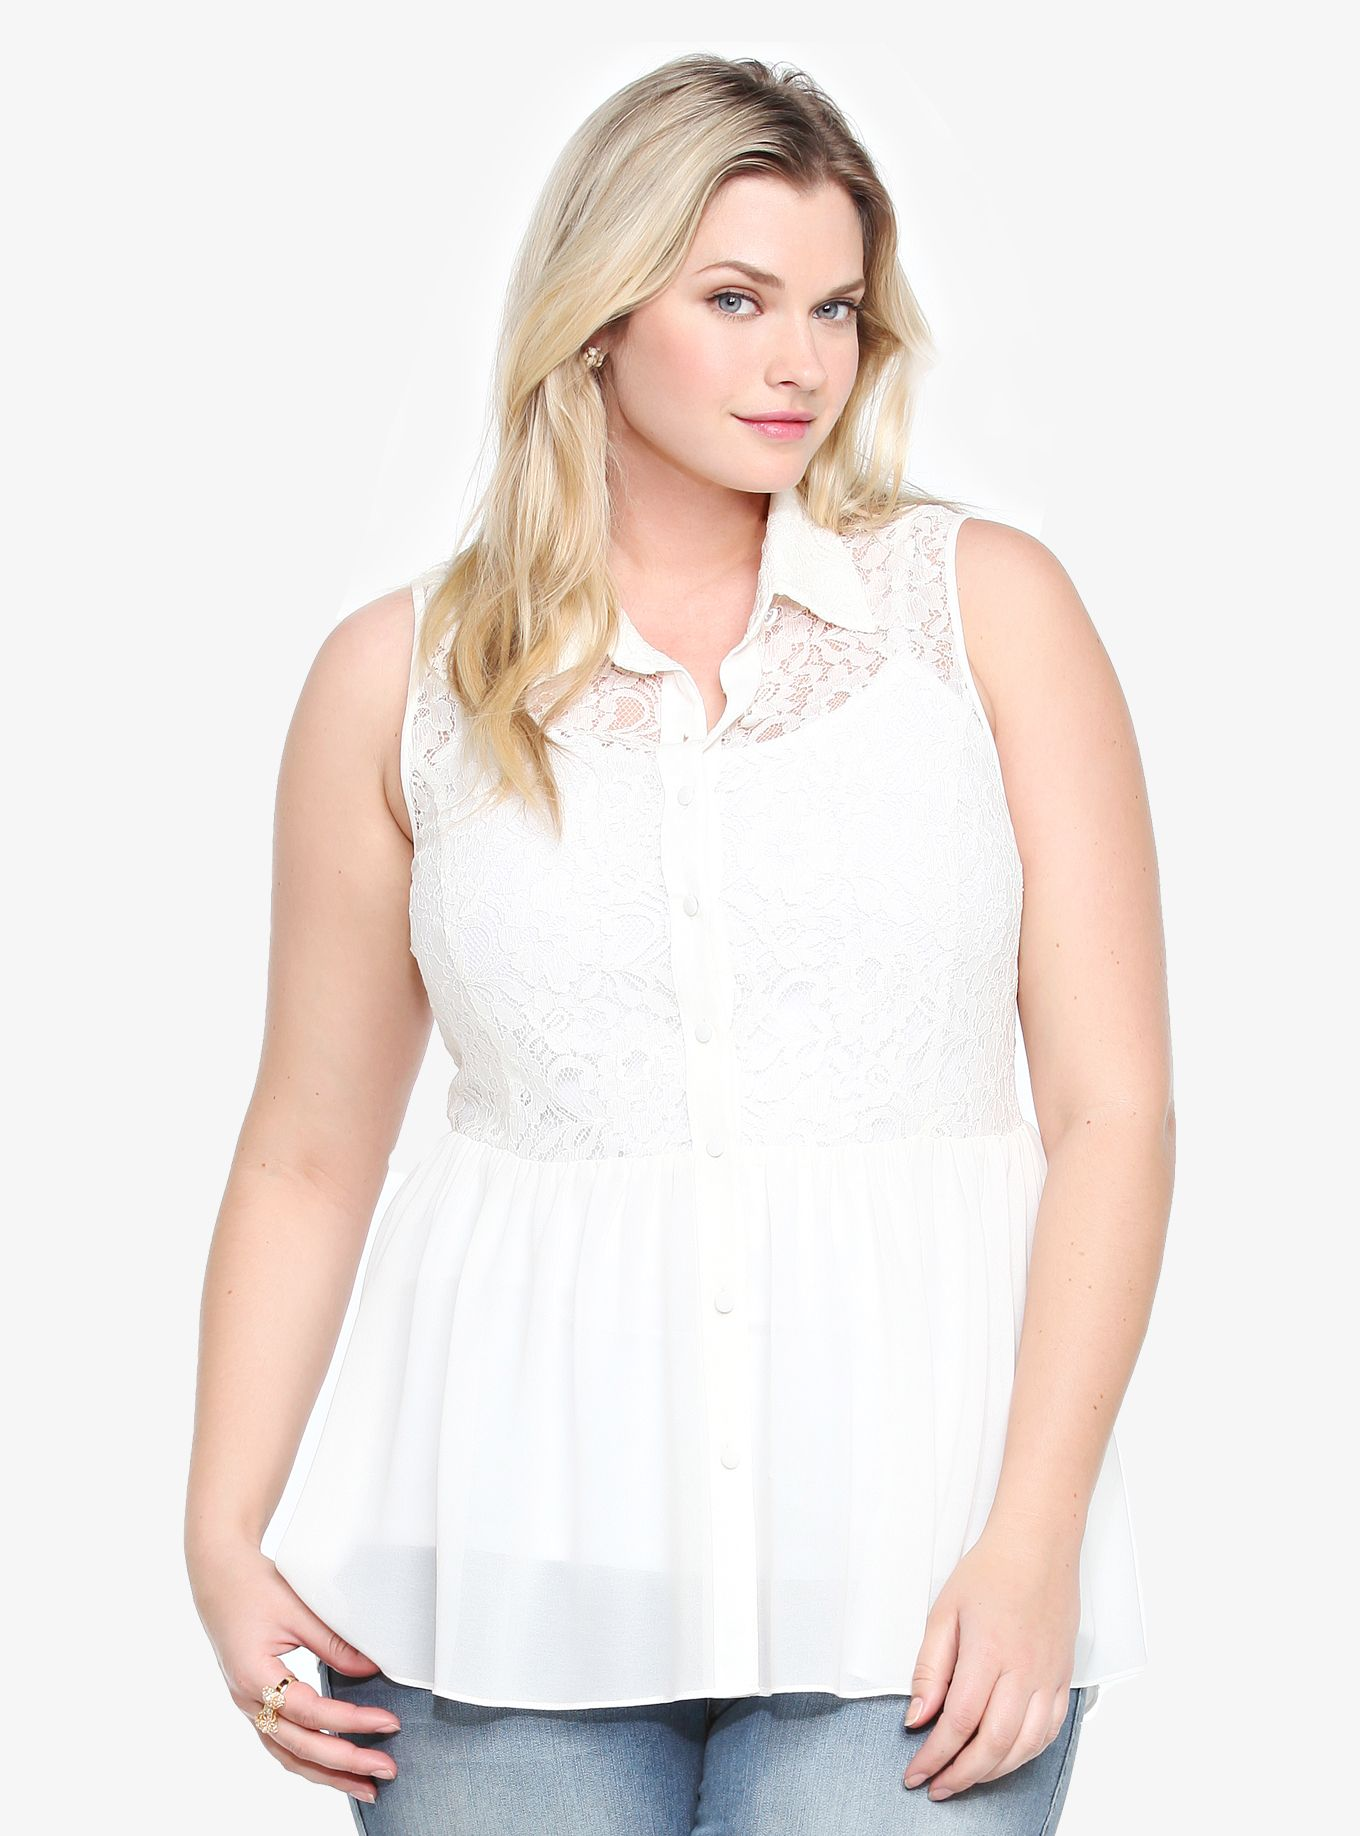 Girly lace meets flowy chiffon on this sleeveless, button-front ivory blouse. The hi-lo peplum silhouette is relaxed and laid-back - so, it's absolute perfection over spring denim.